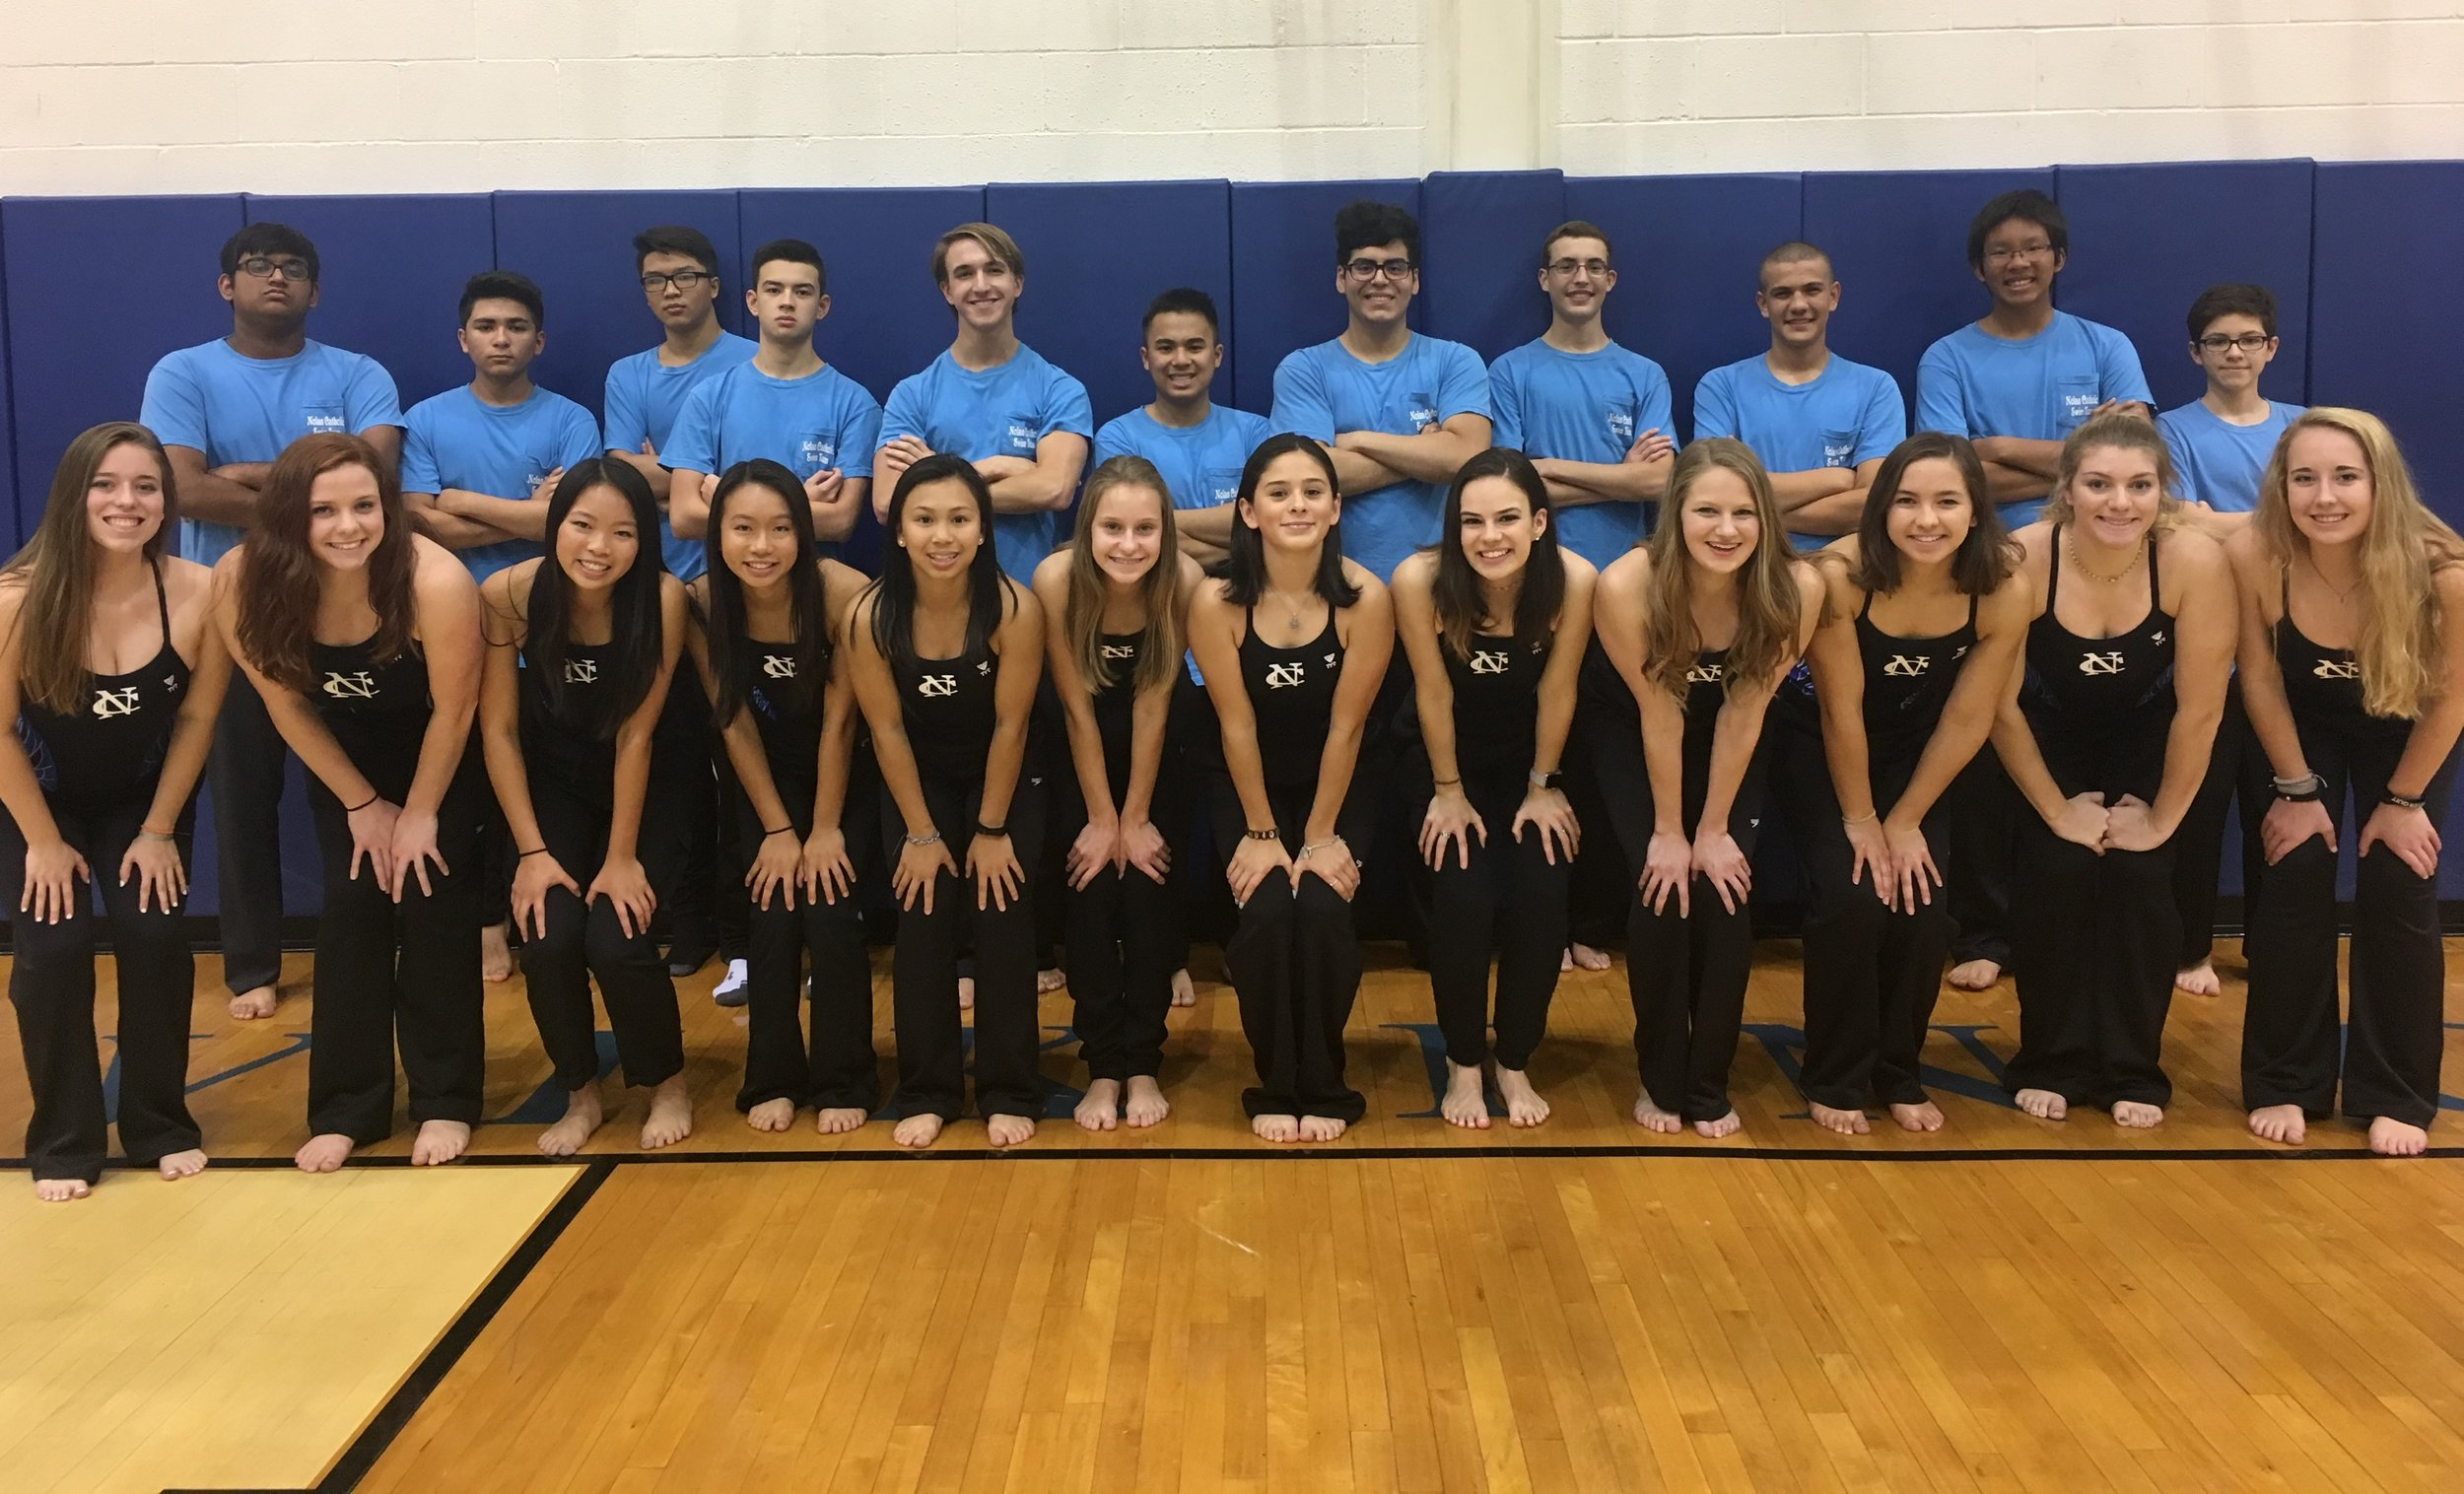 11/3 WOMEN'S SWIM WINS PRIVATE SCHOOL INVITATIONAL IN GRAPEVINE! -